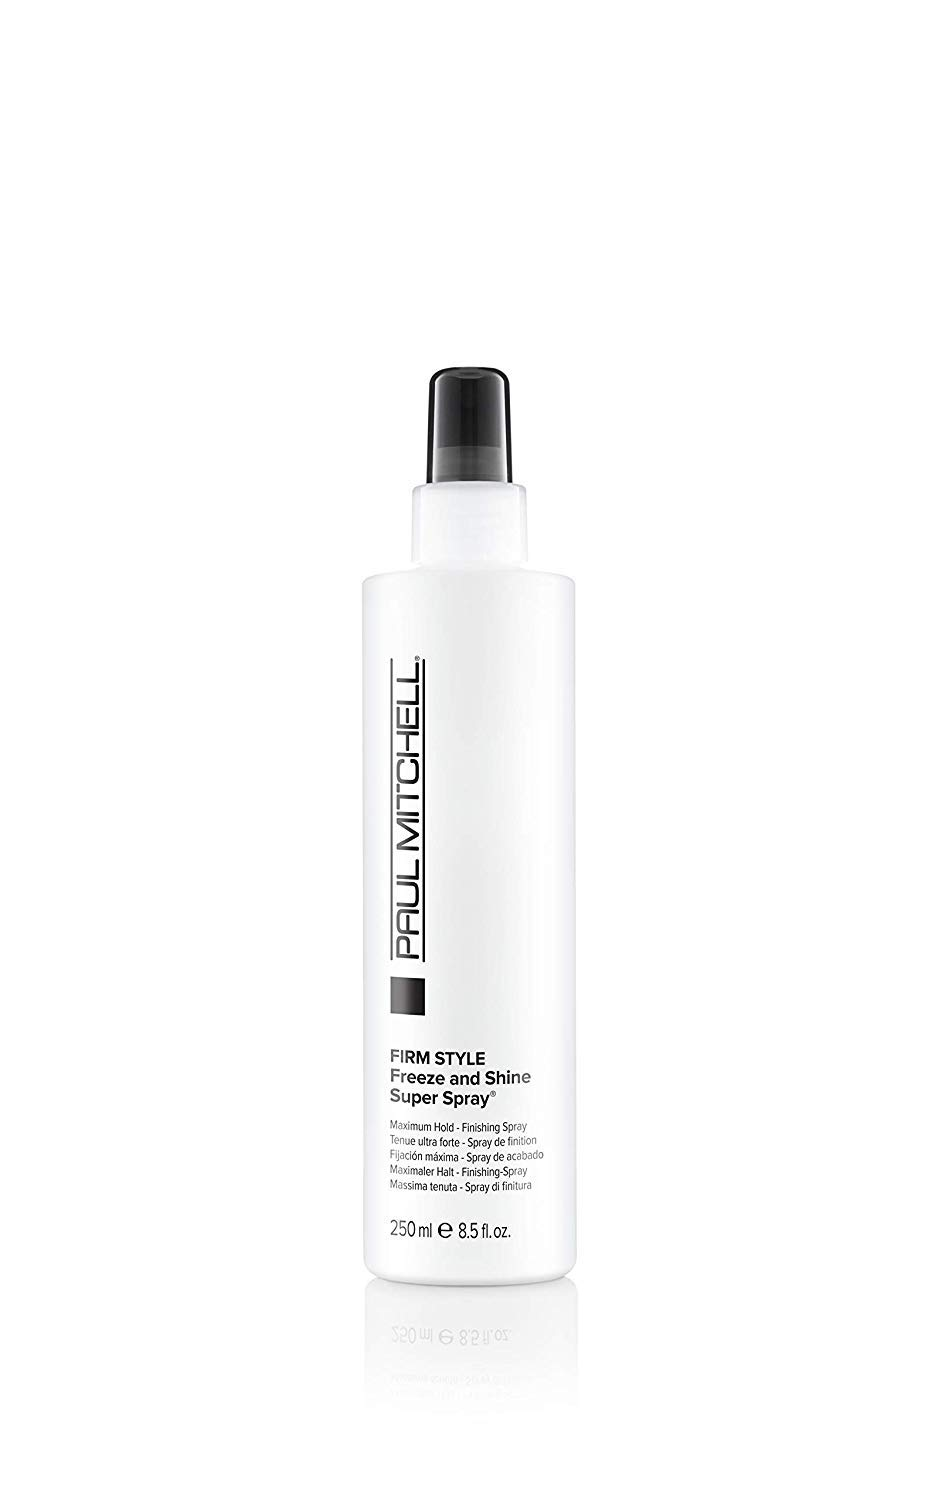 Paul Mitchell Firm Style Freeze And Shine Super Spray, 8.5 Fl Oz